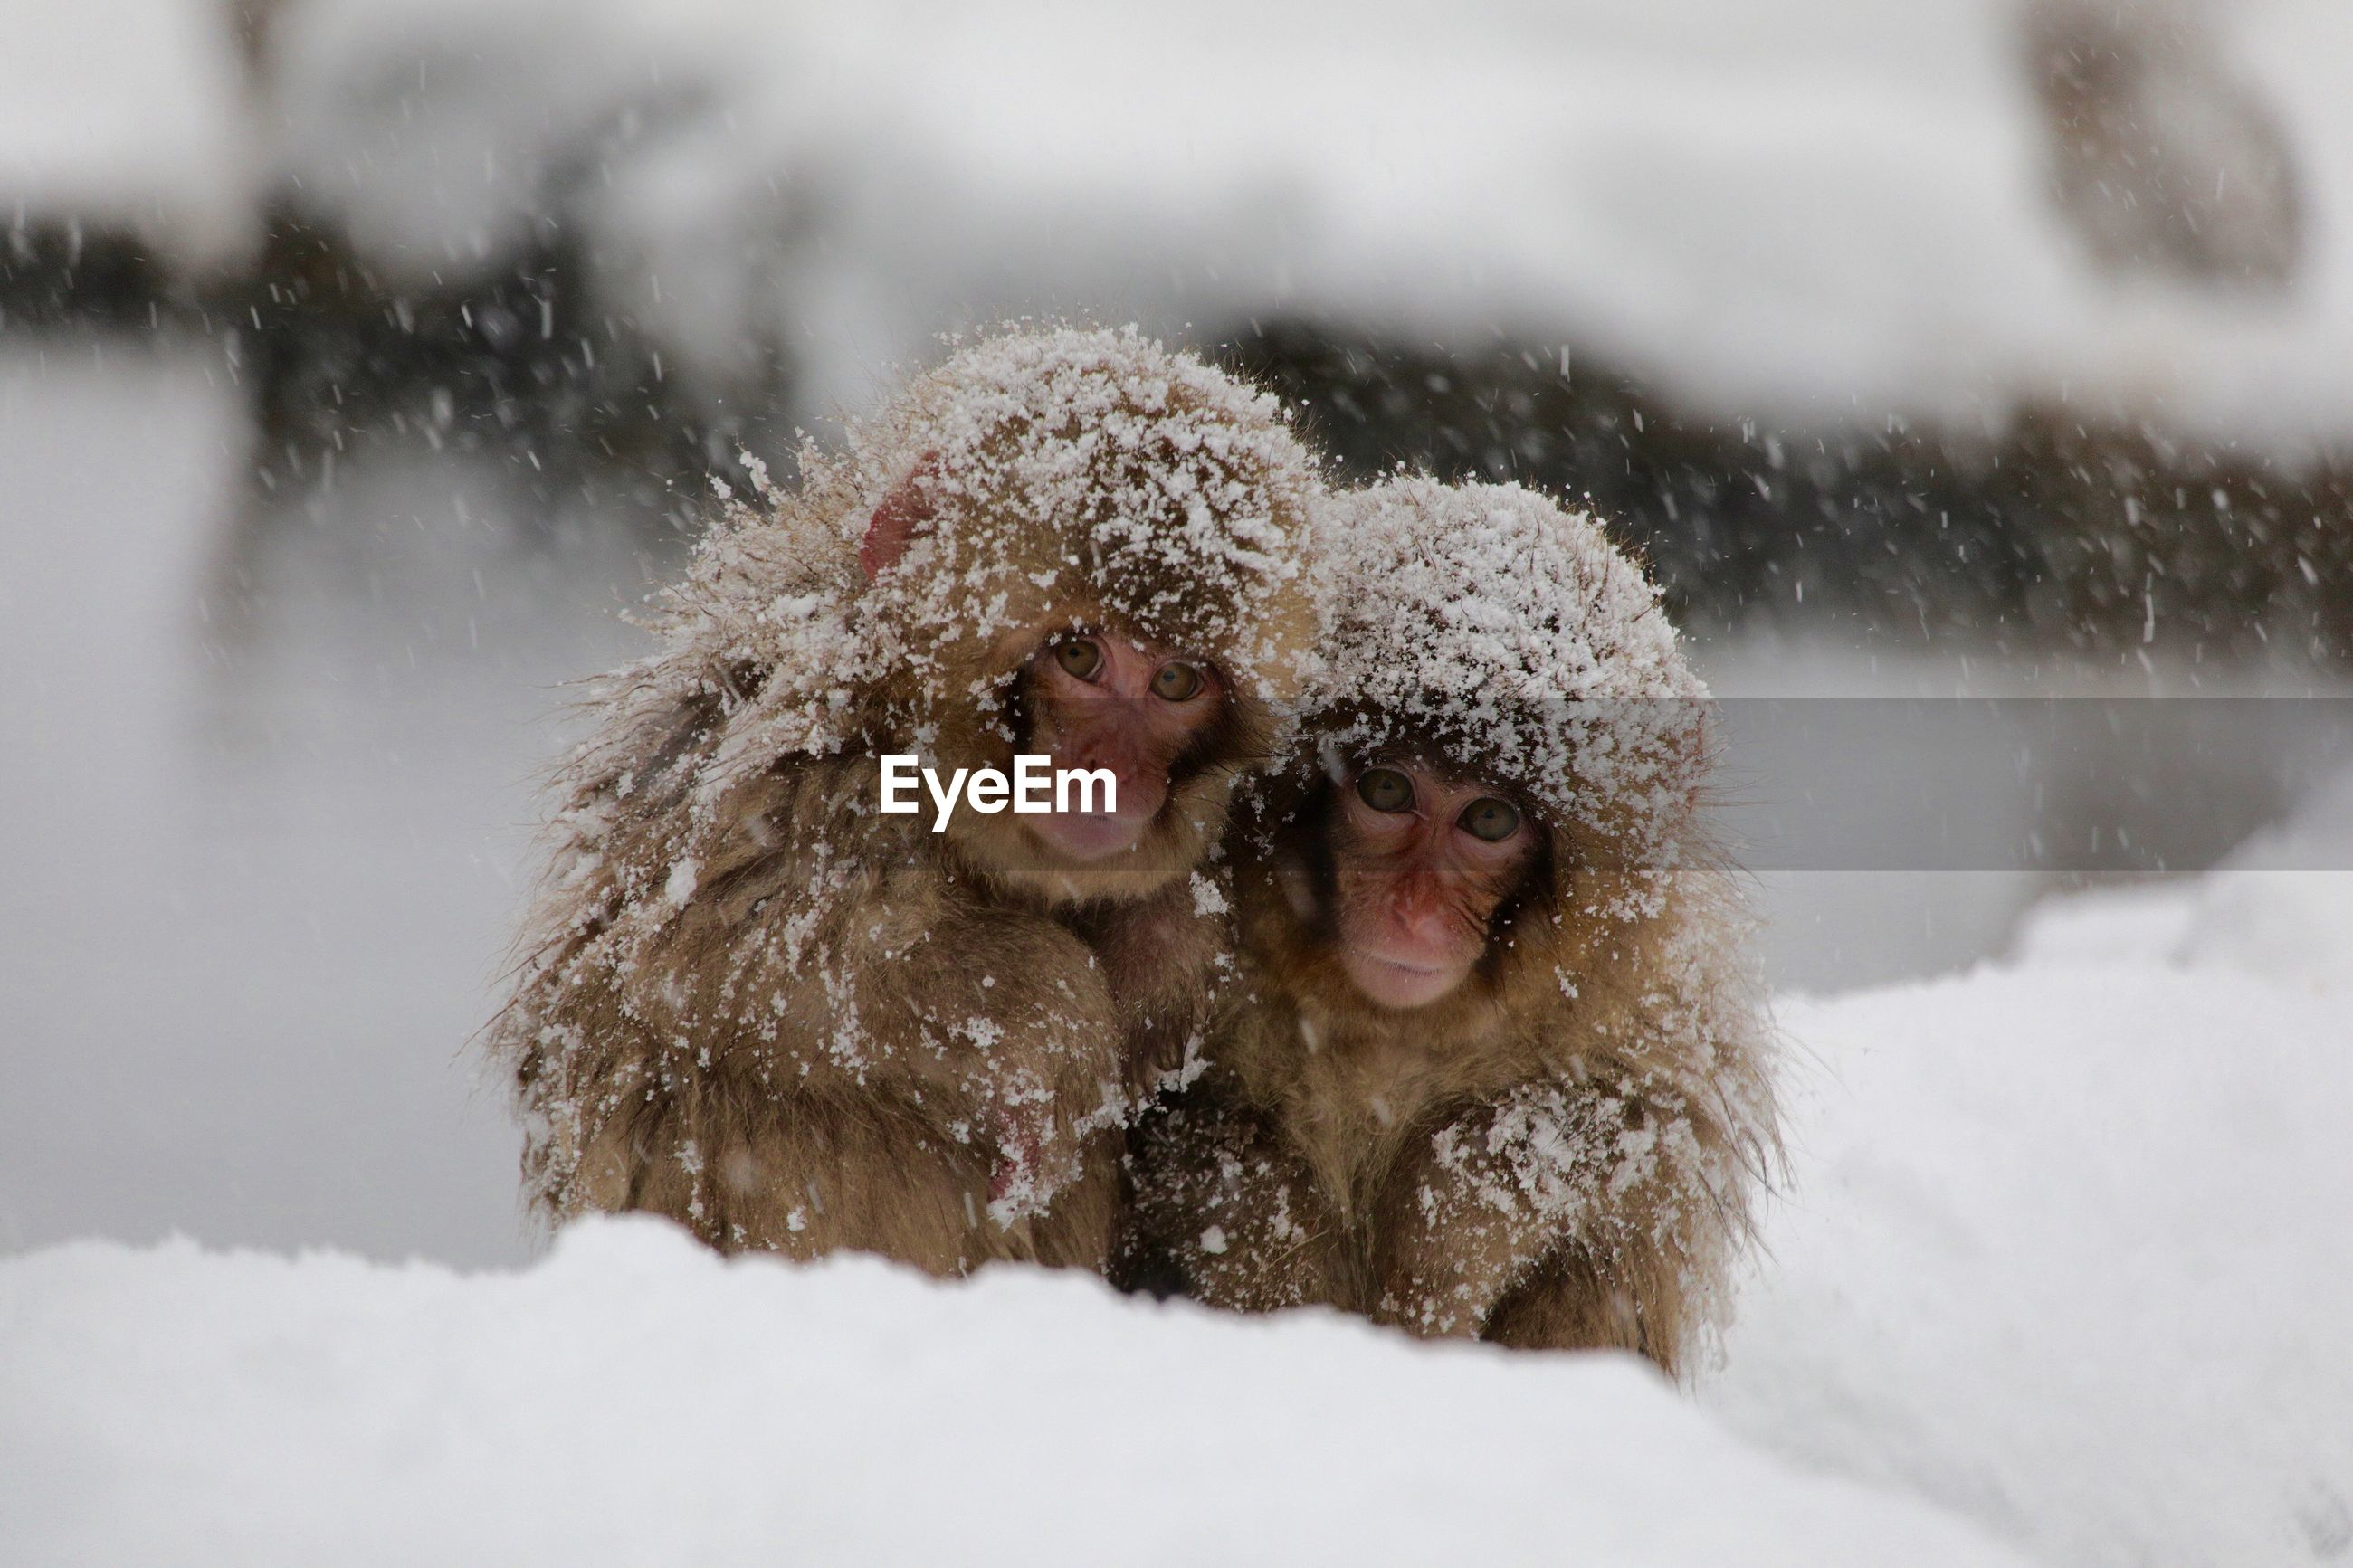 Close-up of monkeys in snow